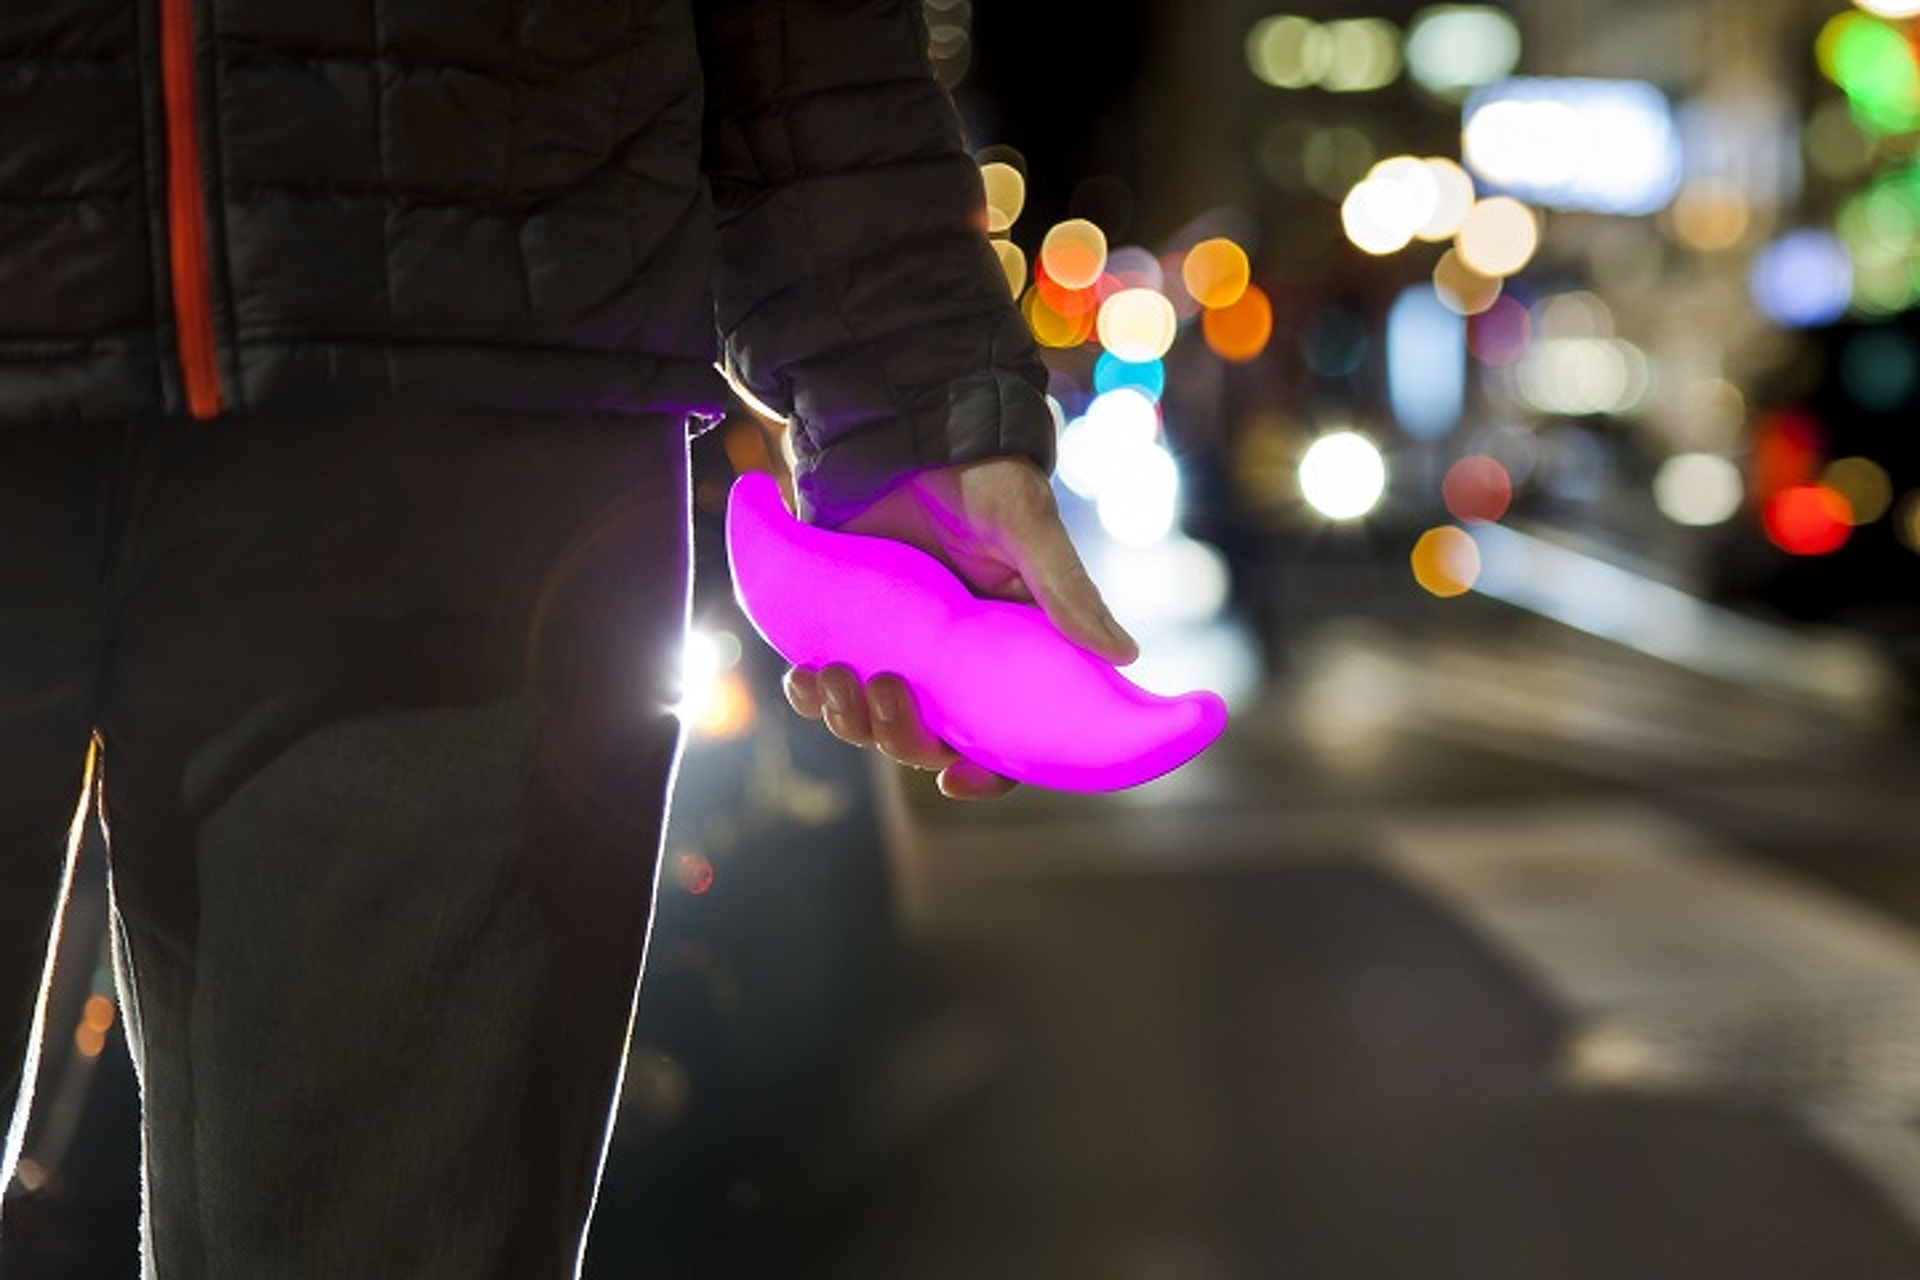 Lyft Wants to Help Seniors Without Smartphones Get Around